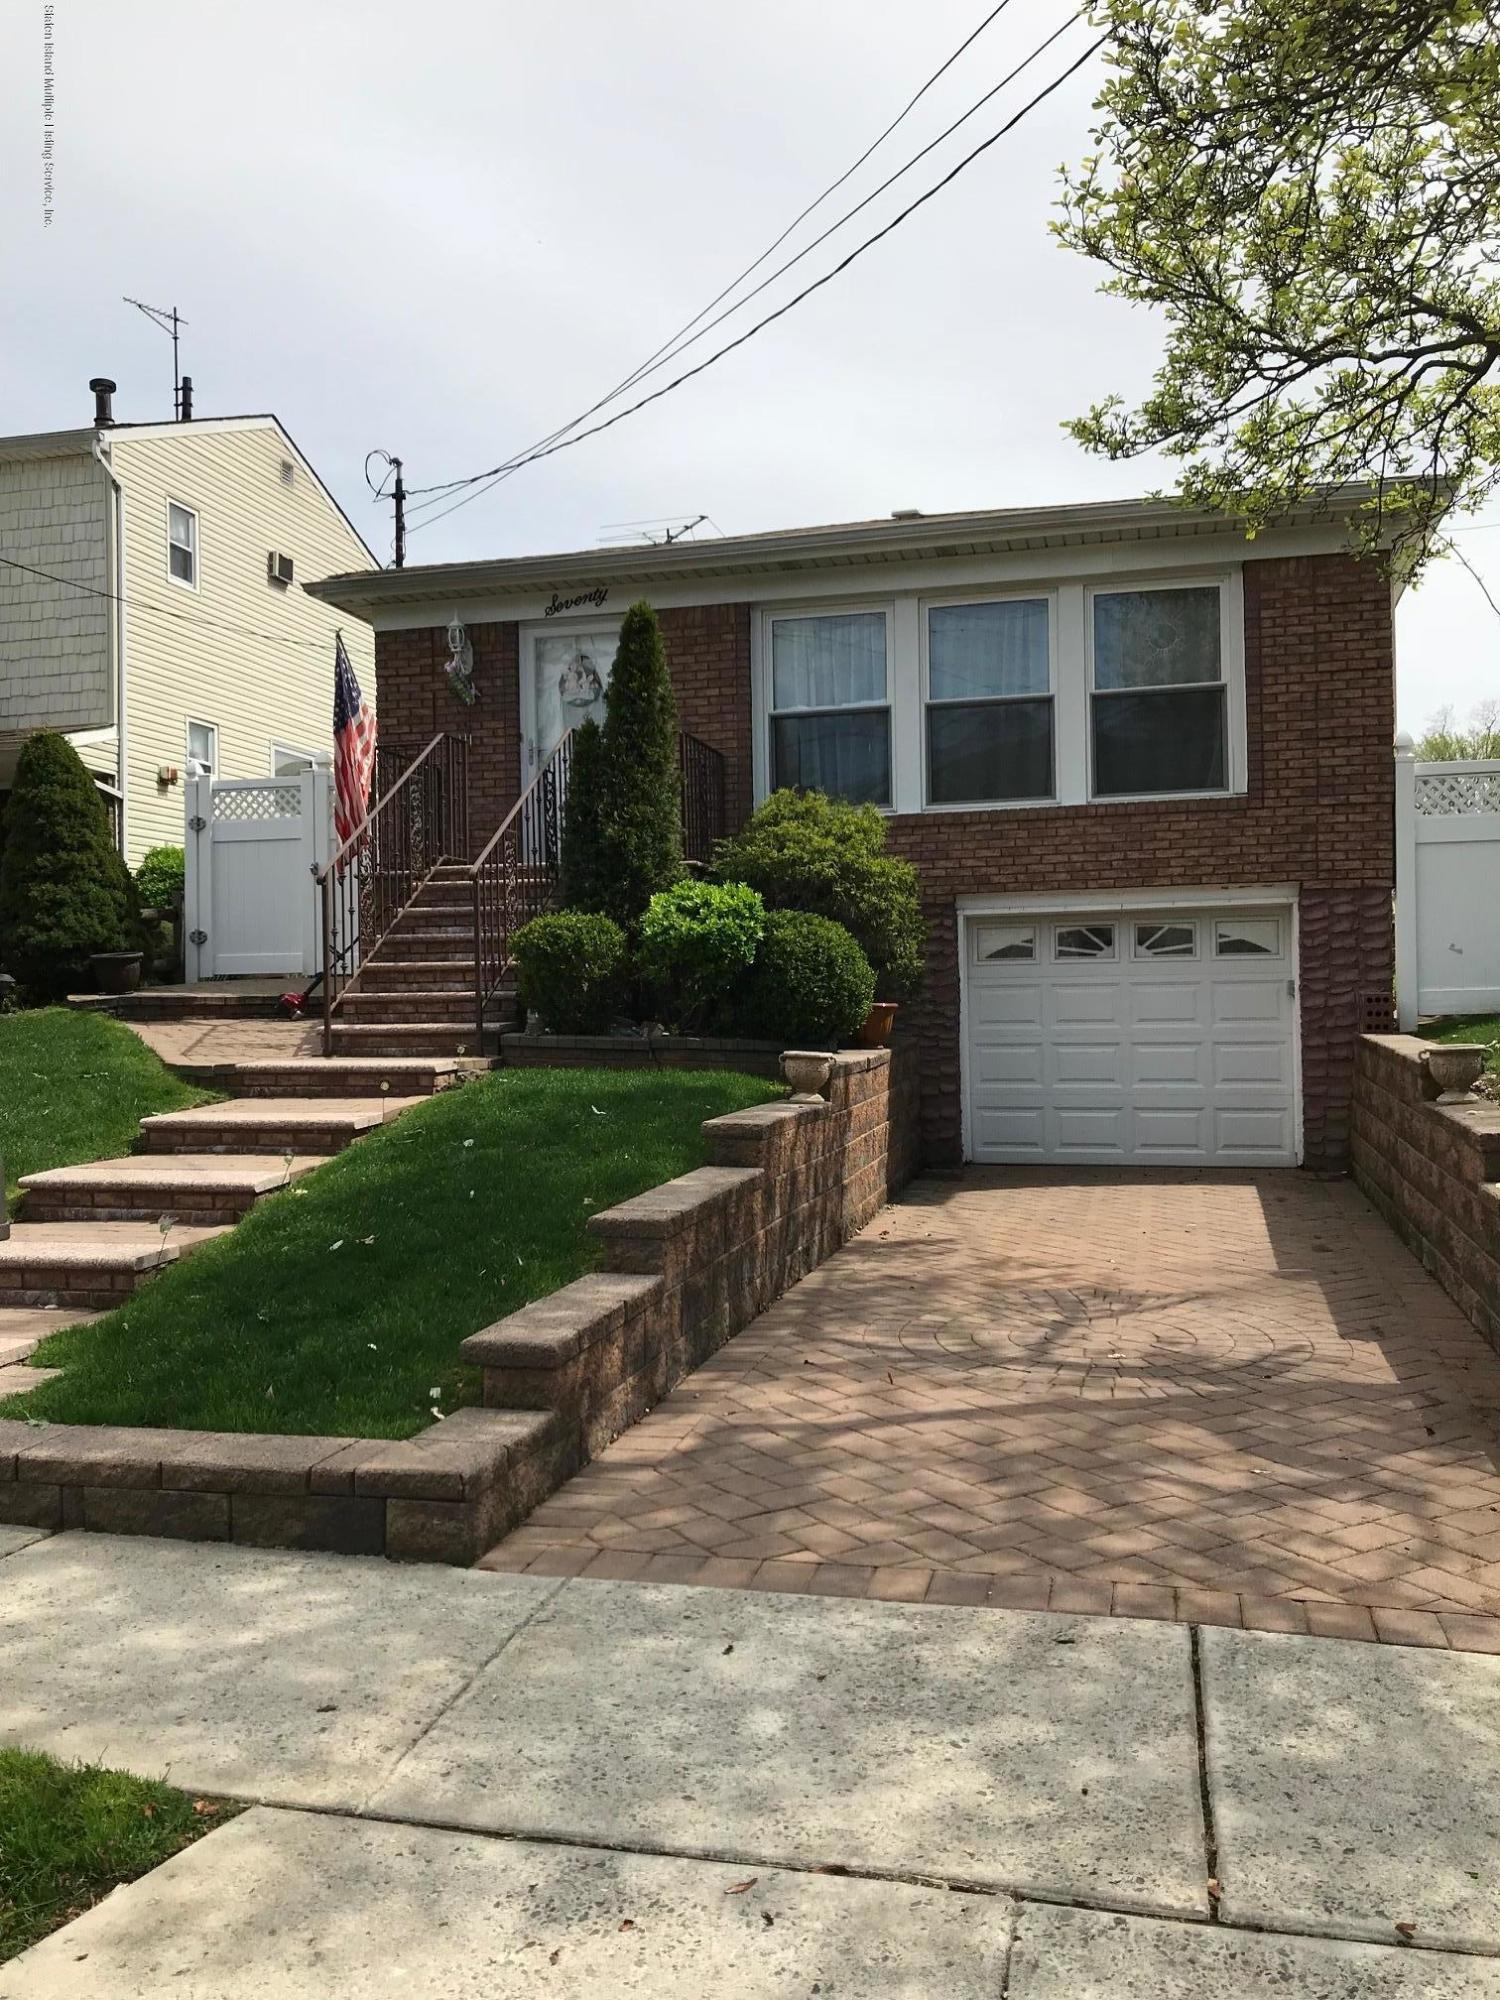 Single Family - Detached 70 Buffington Avenue  Staten Island, NY 10312, MLS-1128134-2